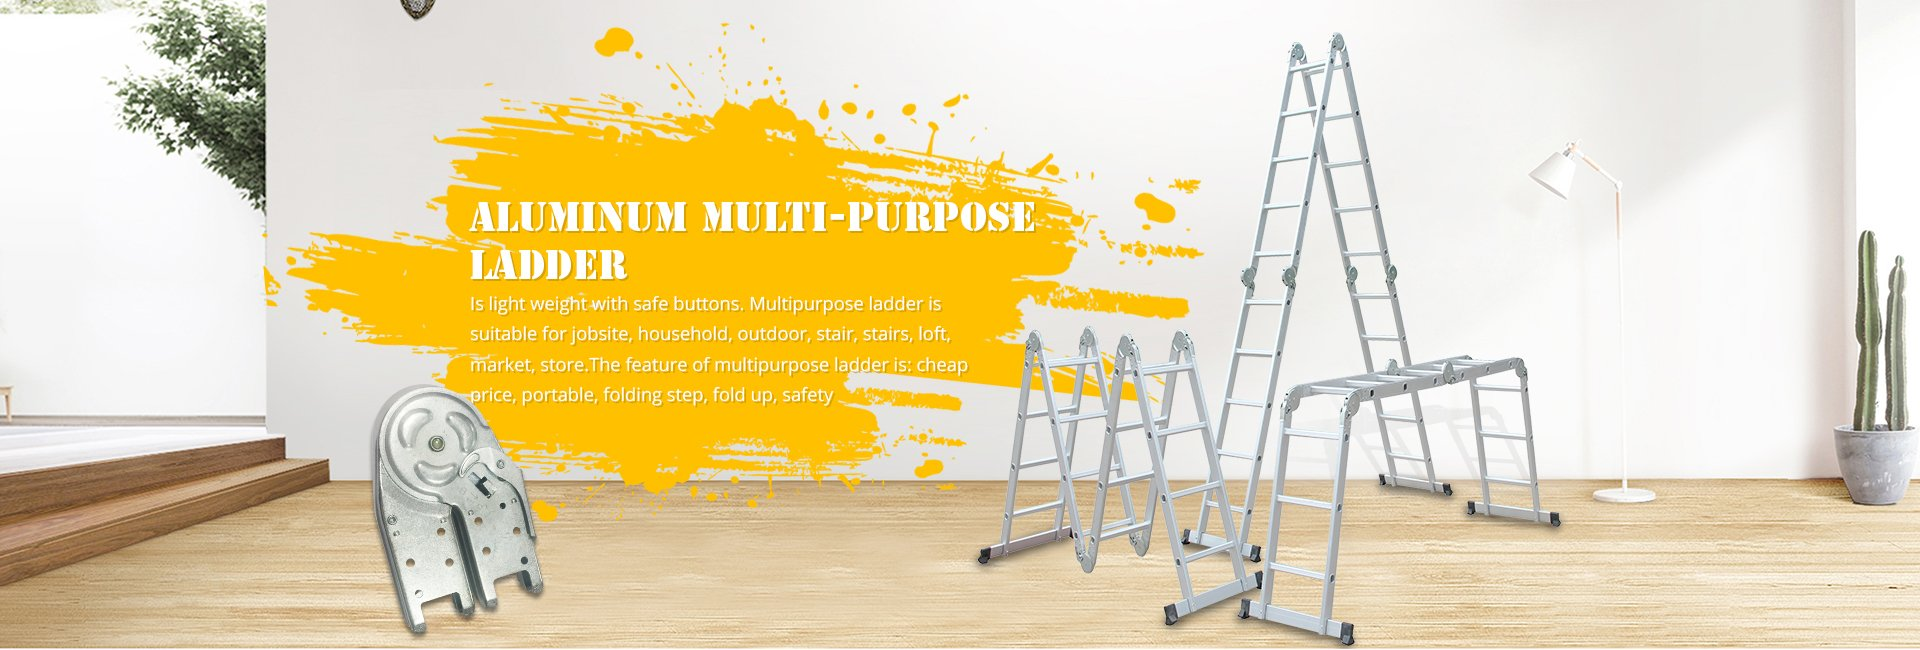 Aluminum Multi-purpose Ladder